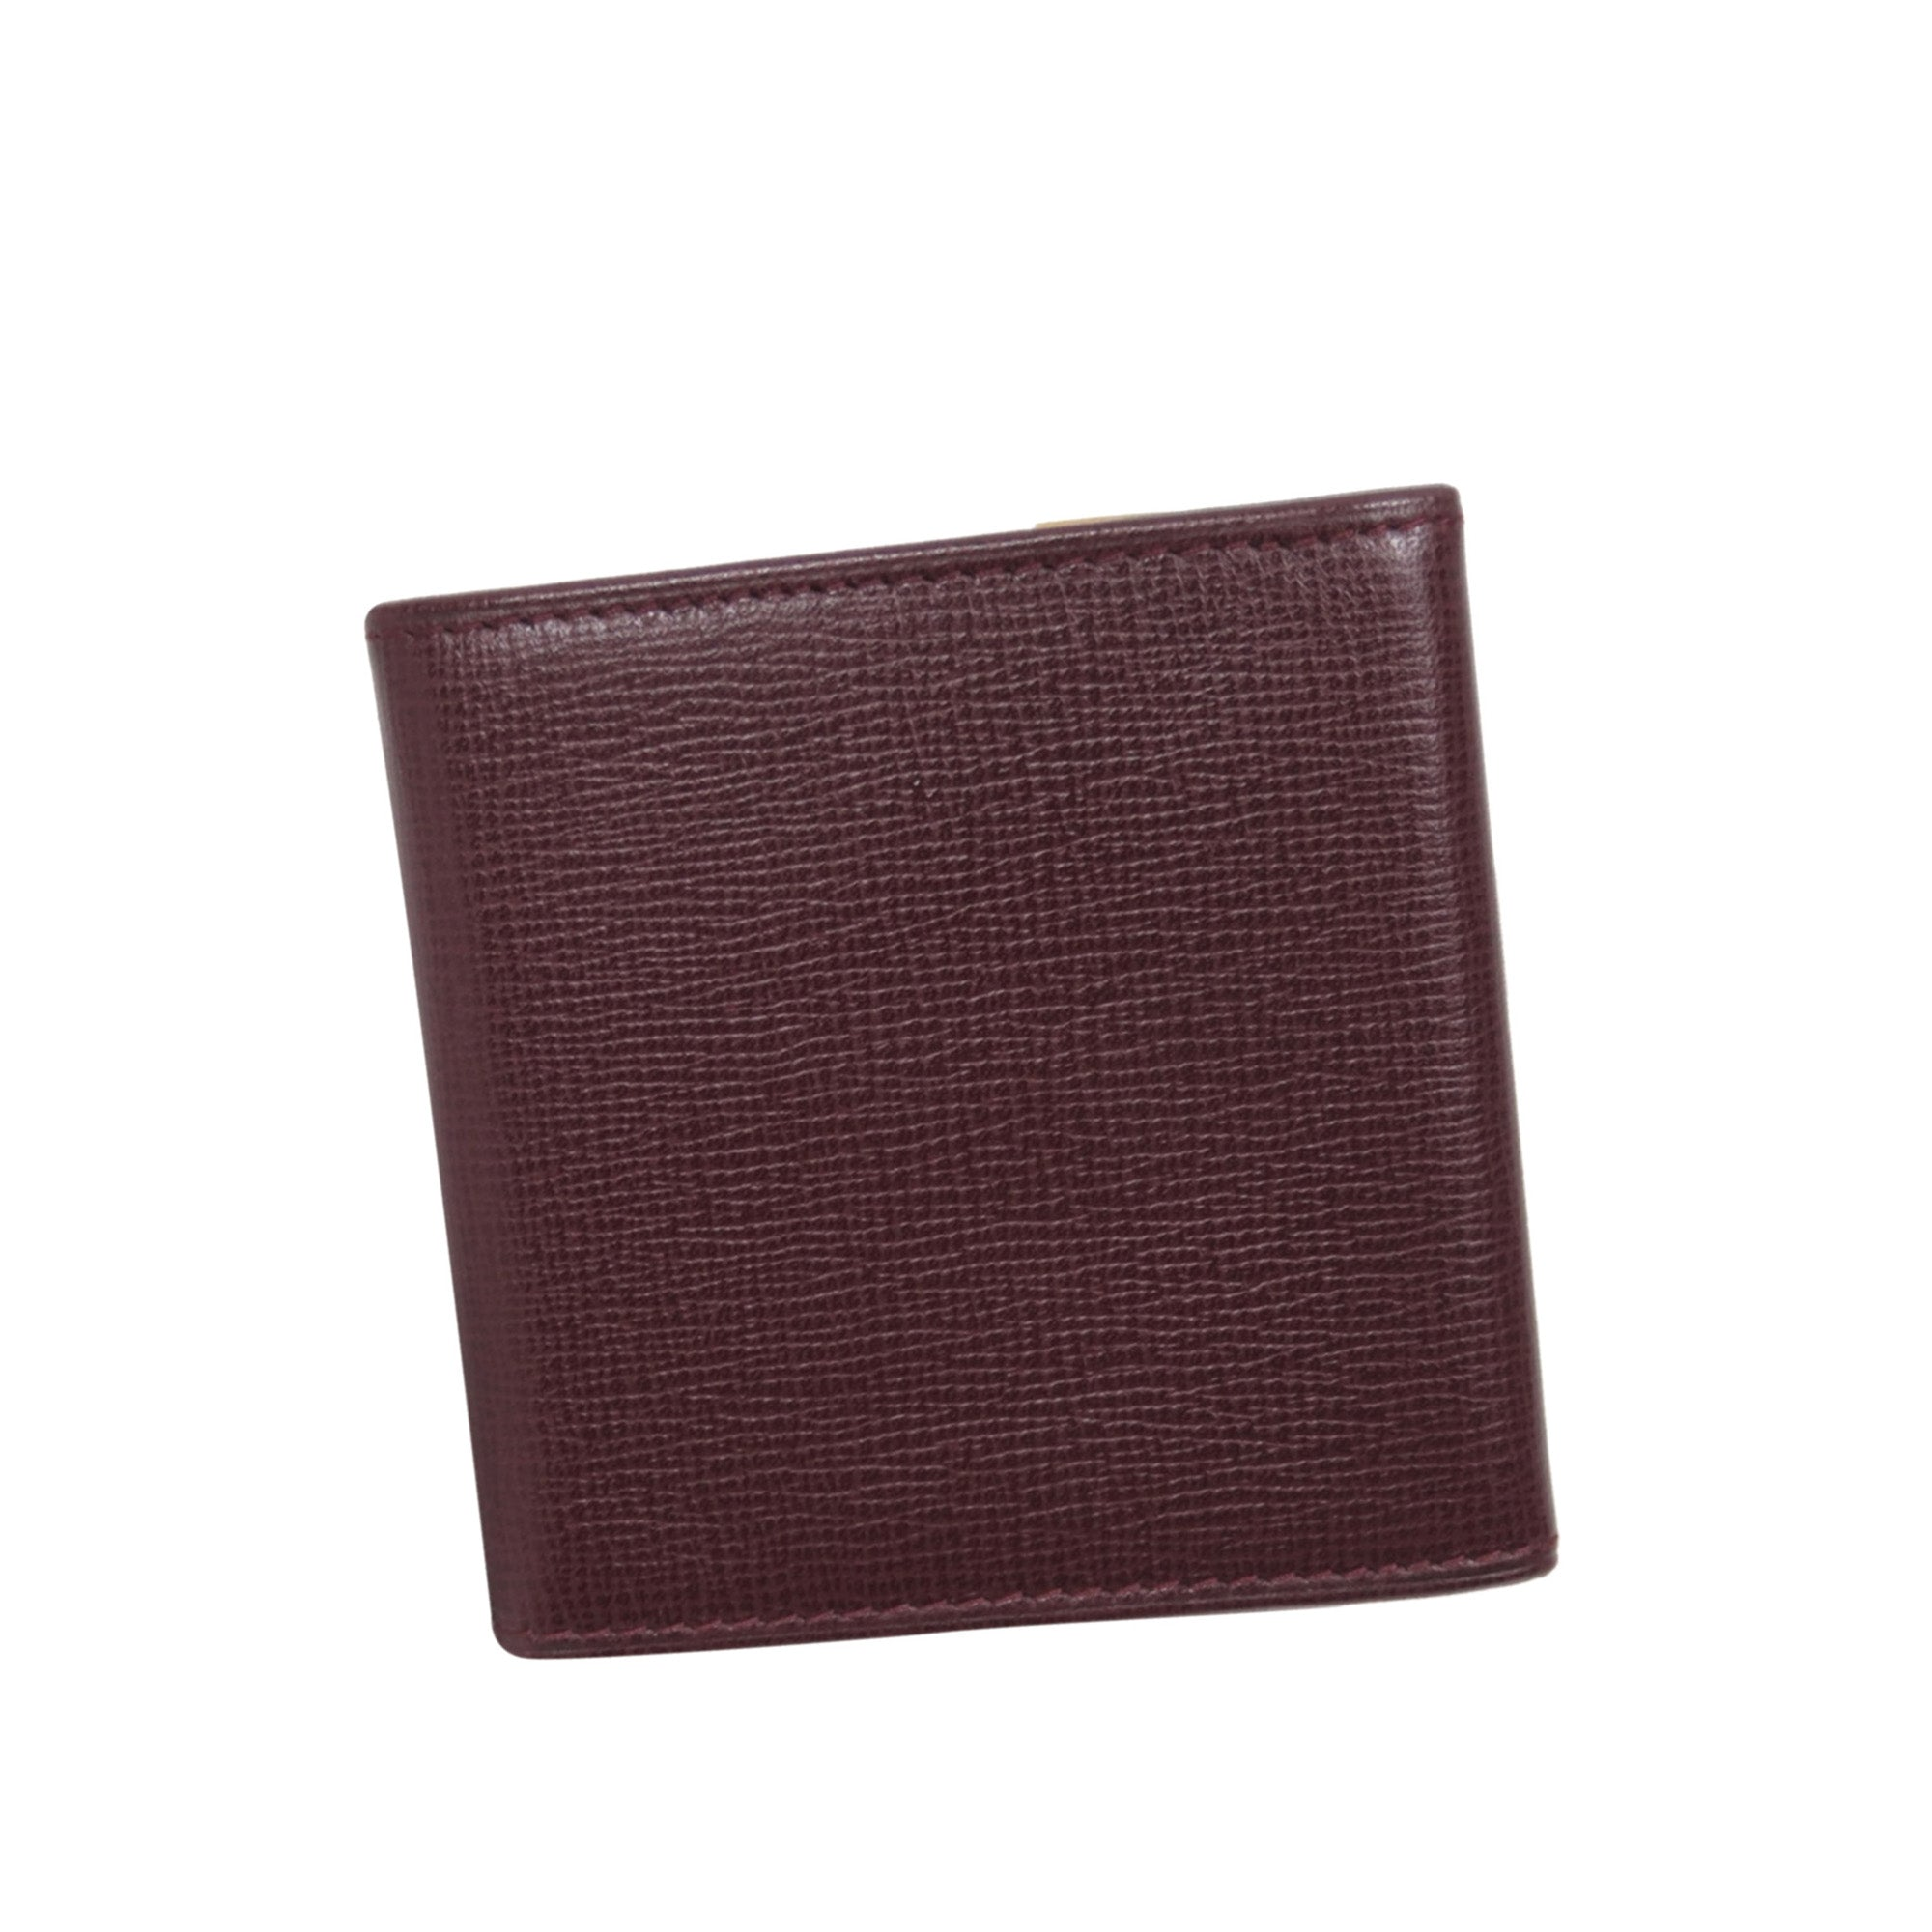 Cartier Red Must de Cartier Leather Coin Pouch